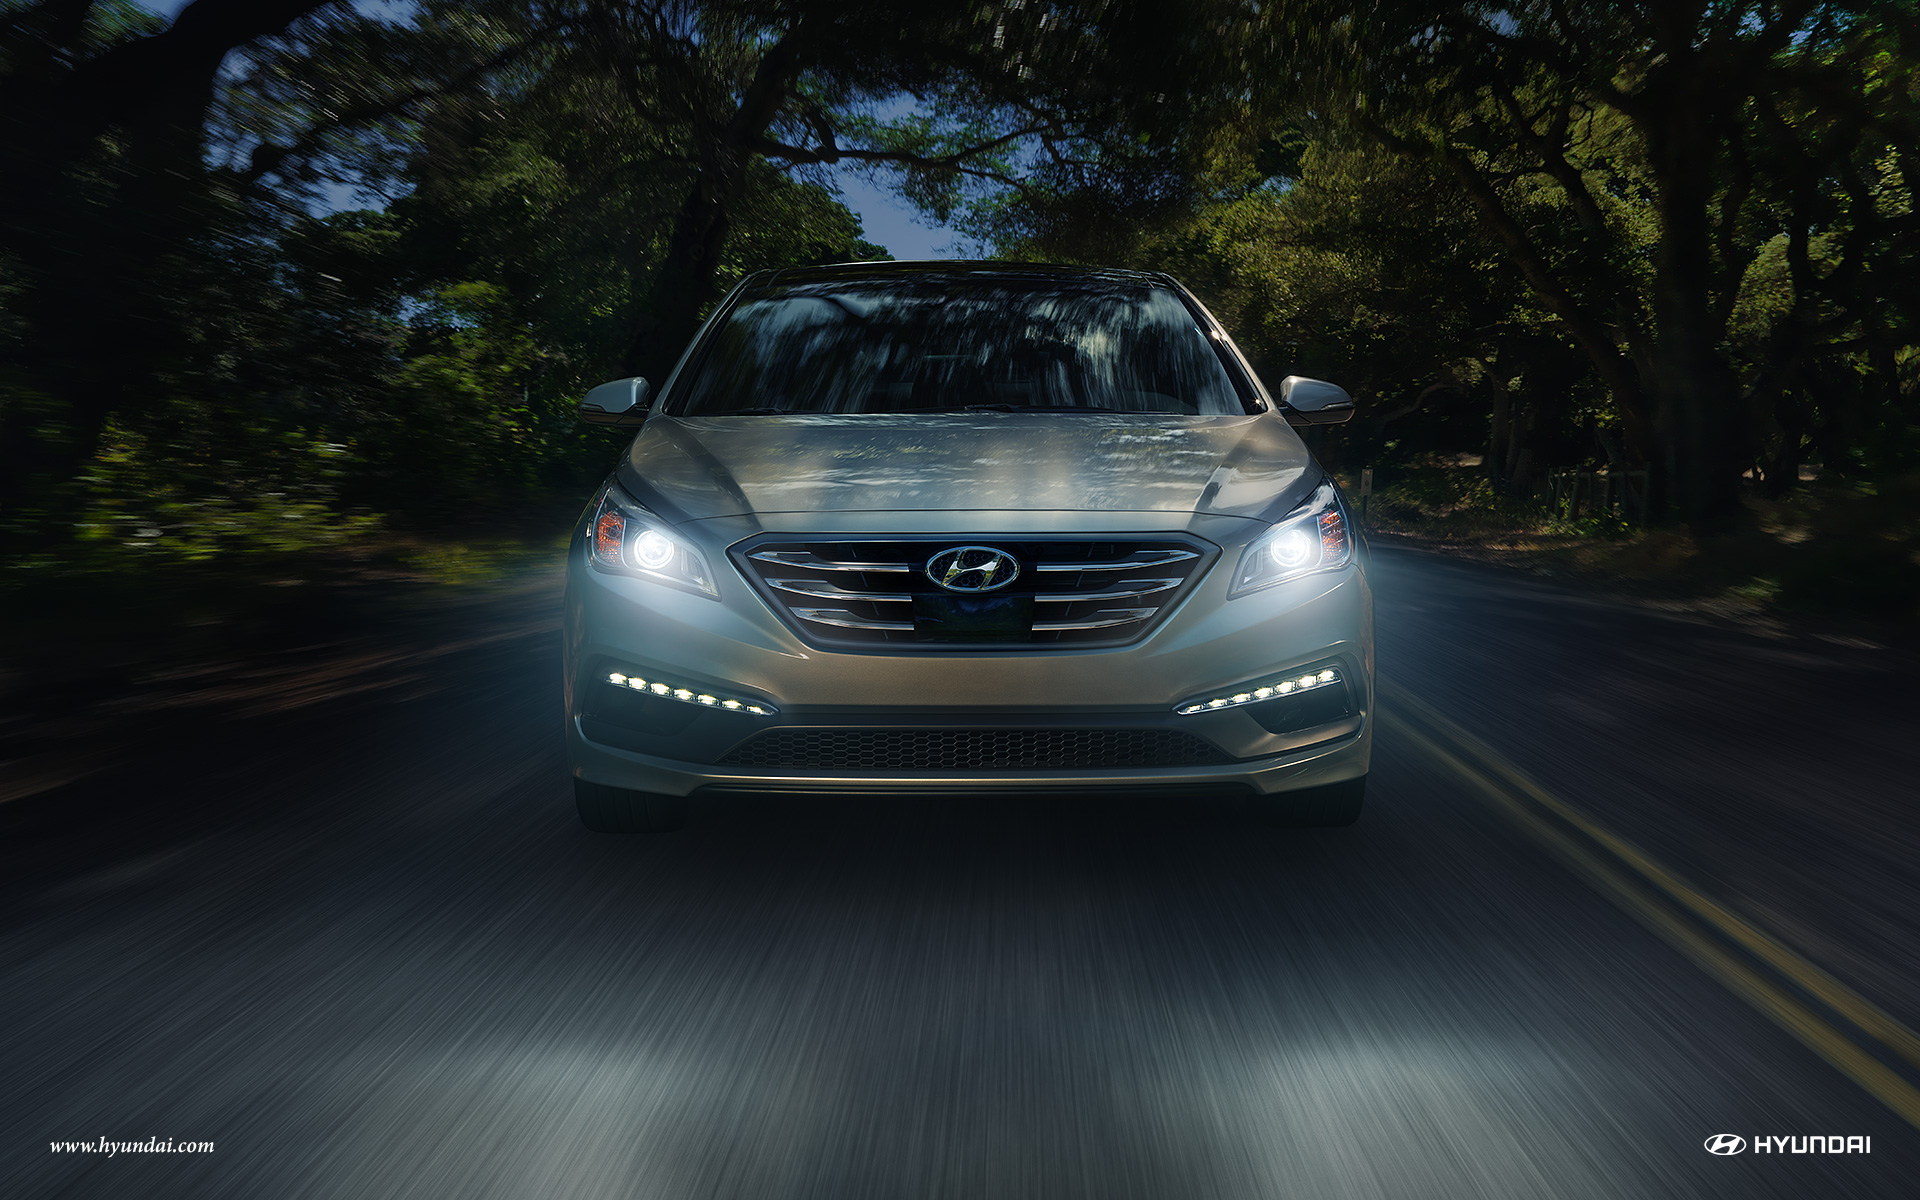 Honda Civic Wilmington Nc >> Compare Hyundai's Reliable Vehicles to Learn Which is For You | Parkway Hyundai Blog